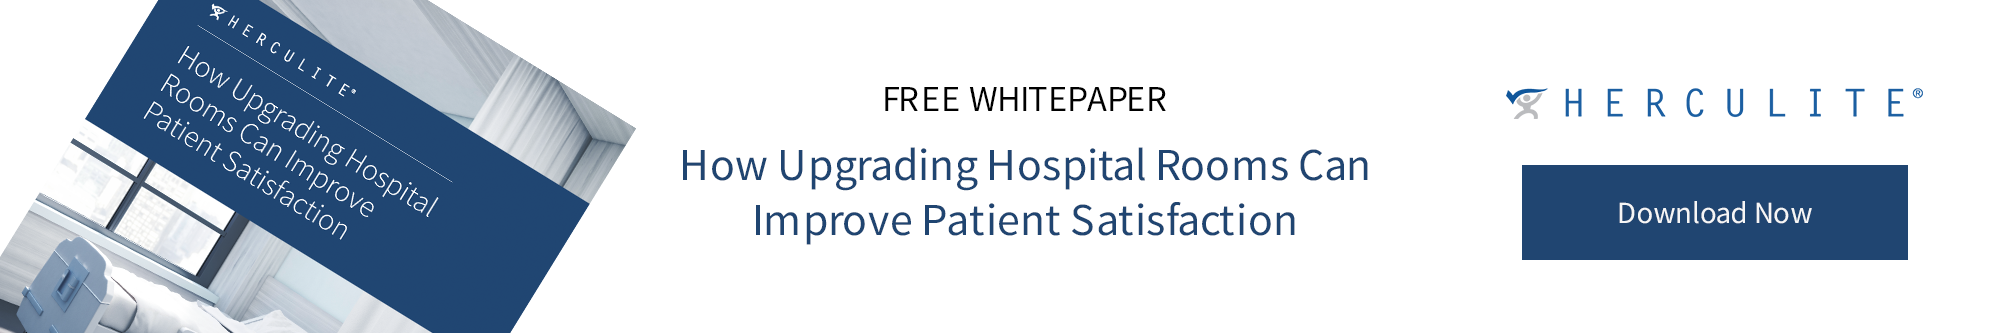 Herculite How Upgrading Hospital Rooms Can Improve Patient Satisfaction Whitepaper